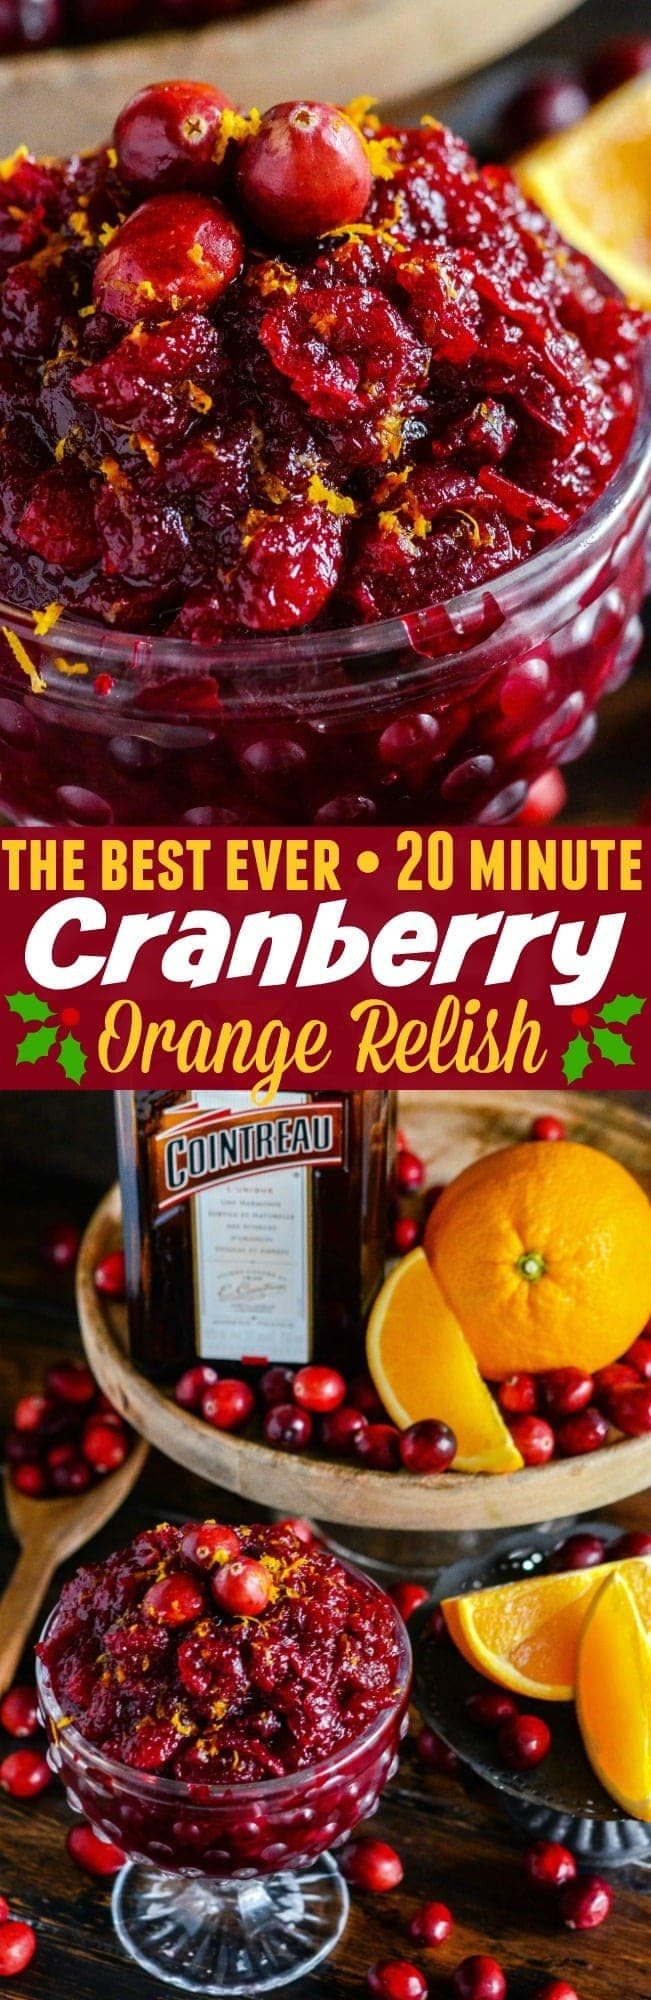 Cranberry Orange Relish: the best homemade fresh cranberry relish recipe for your holiday dinner is made with orange zest and Cointreau in just 20 minutes! #cranberryorangerelish #cranberryrelish #cranberry #Thanksgiving #Thanksgivingsidedishes #Christmas #ChristmasSideDishes